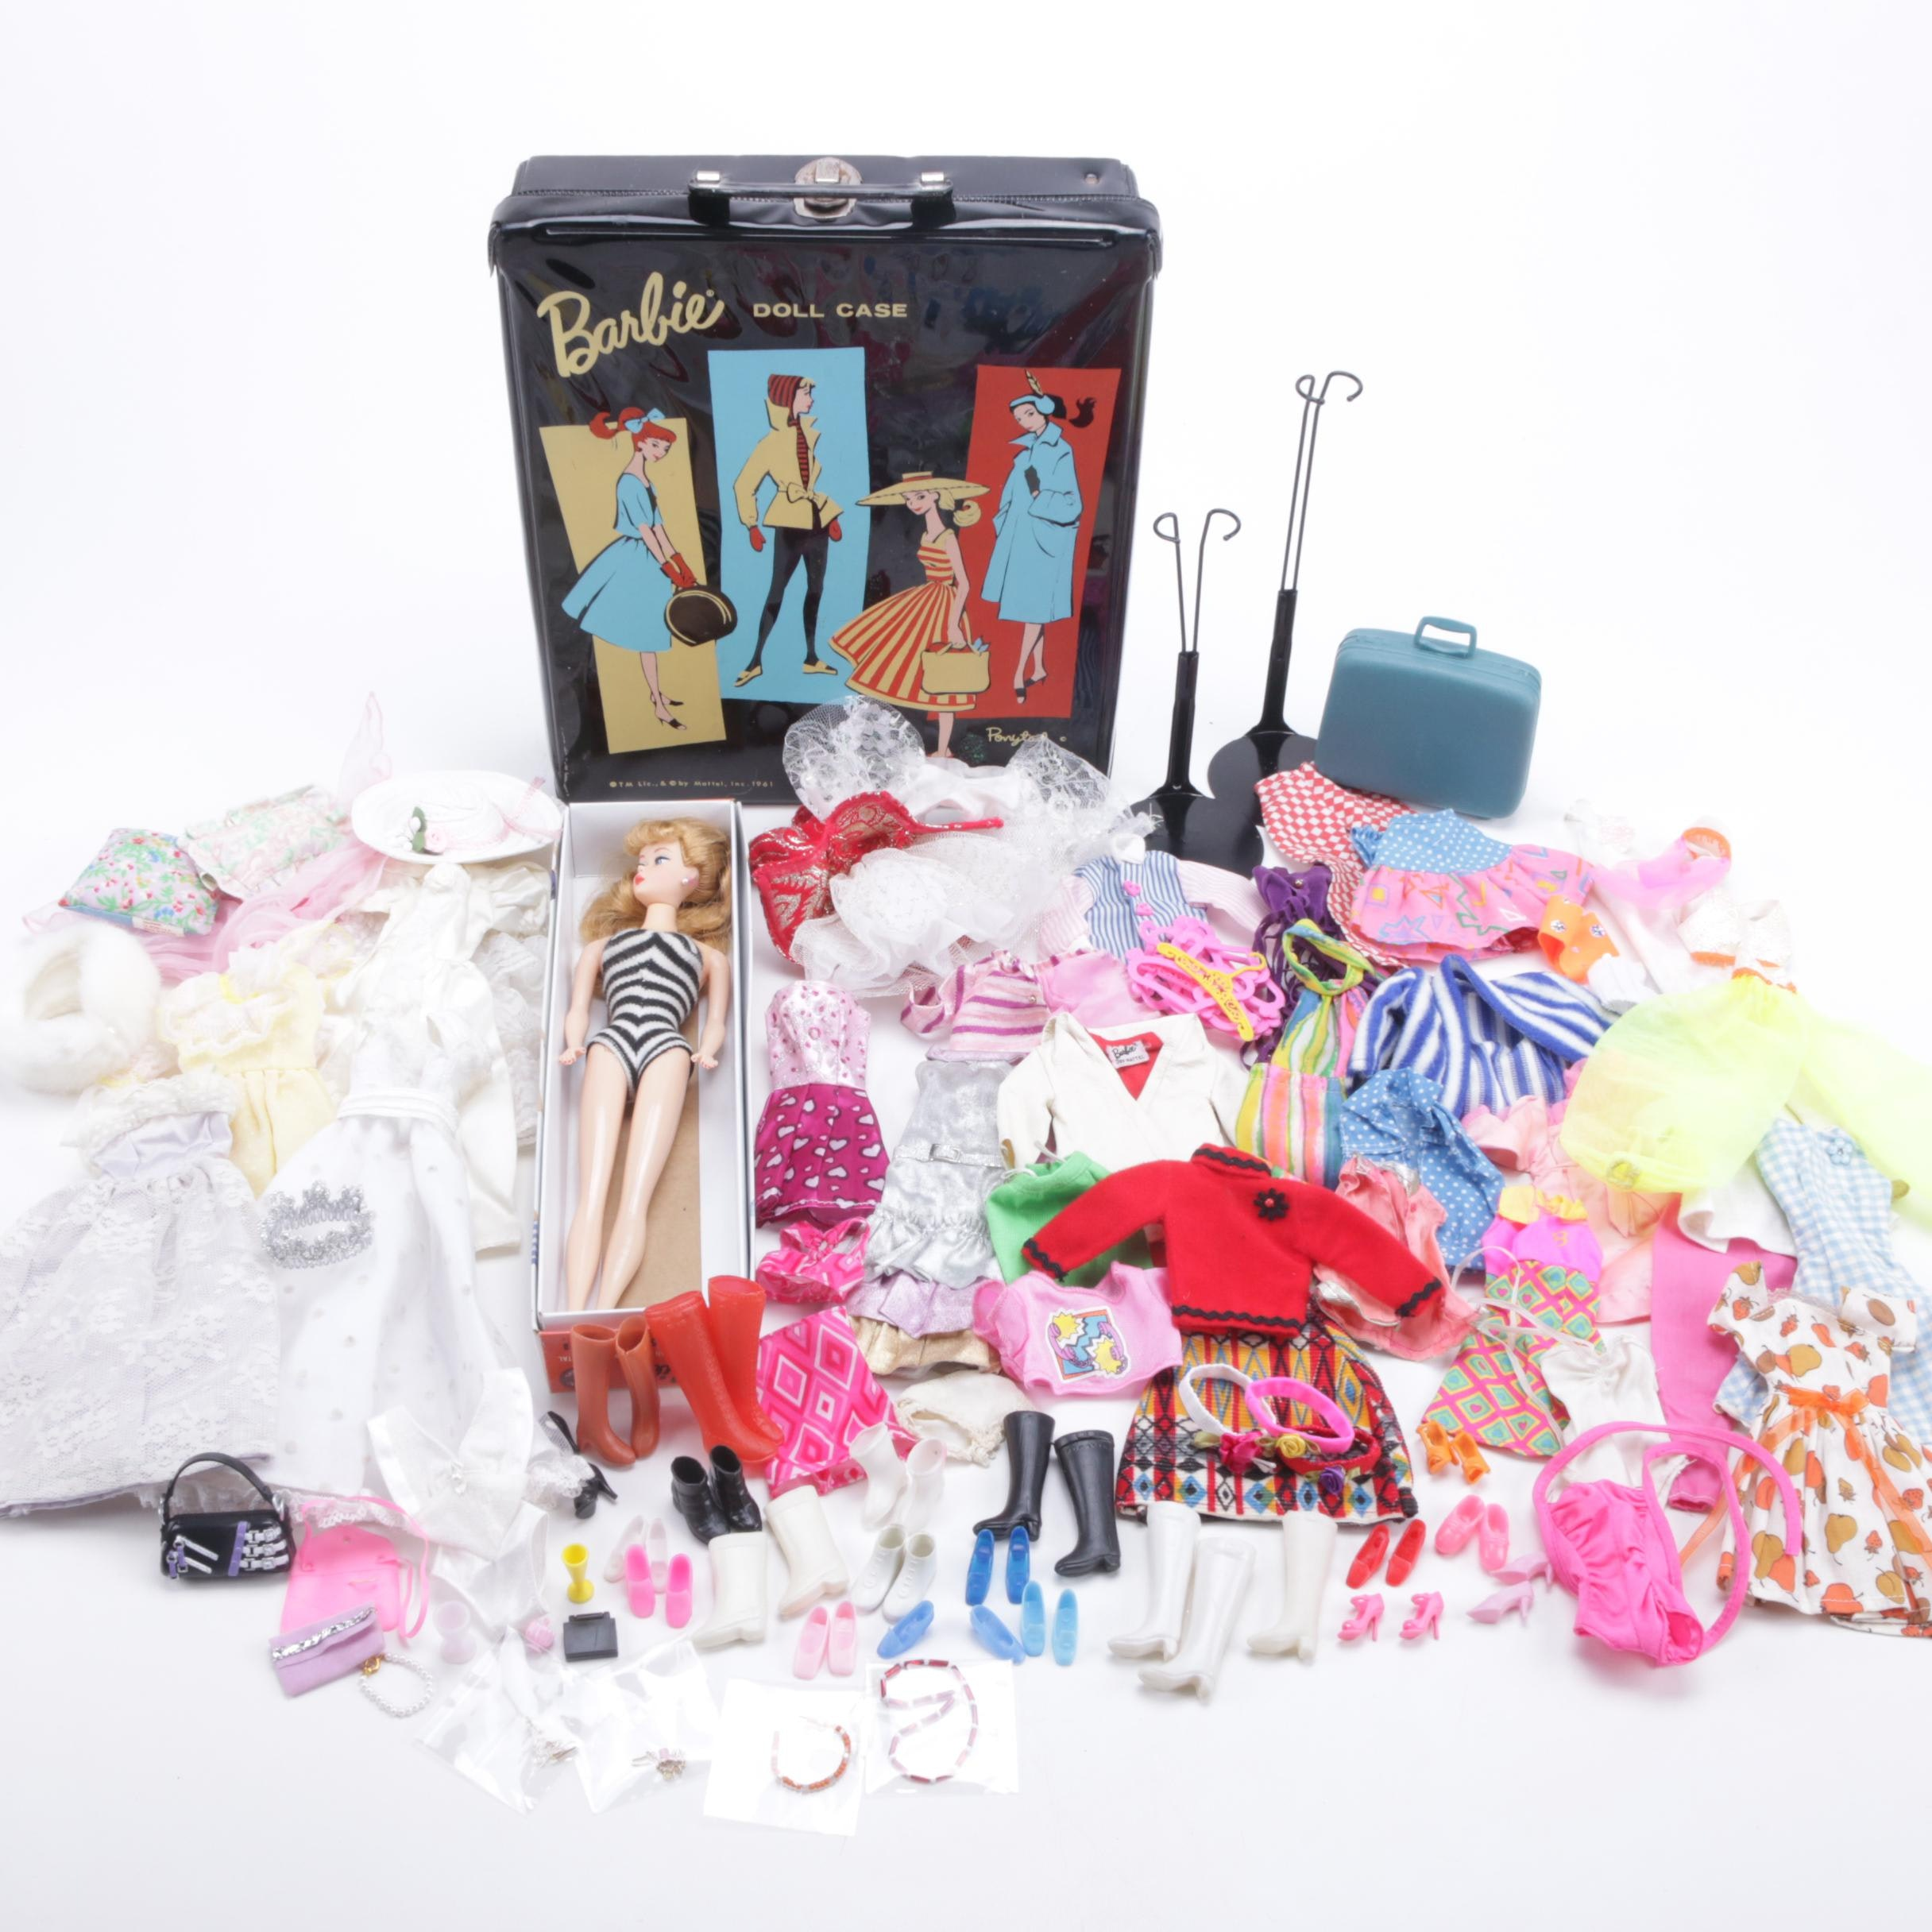 35th Anniversary Ponytail Barbie with Vintage Clothing and Doll Case